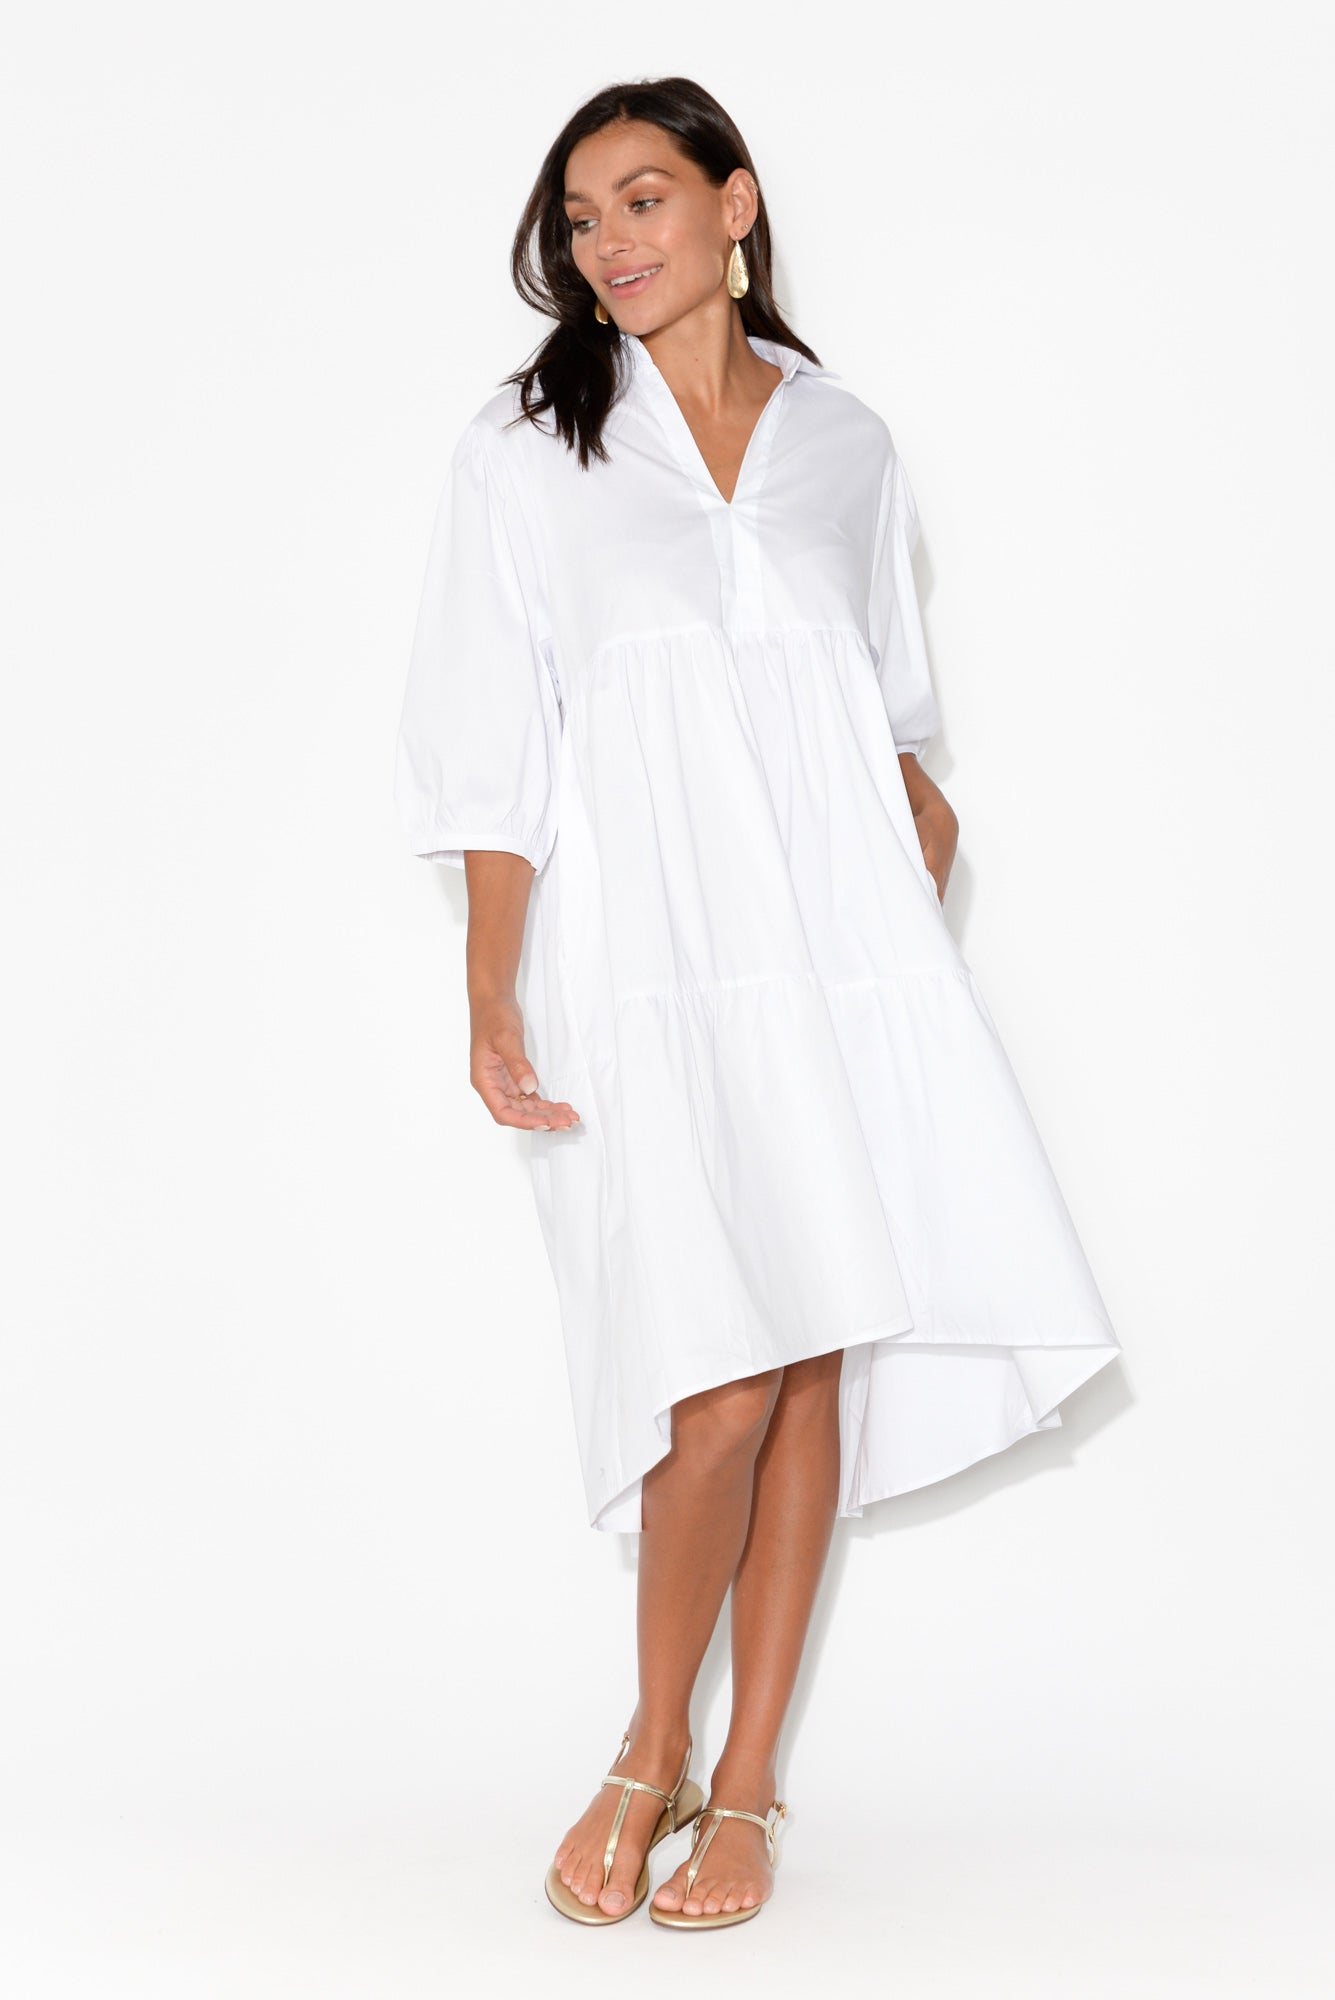 Asta White Cotton Tier Dress